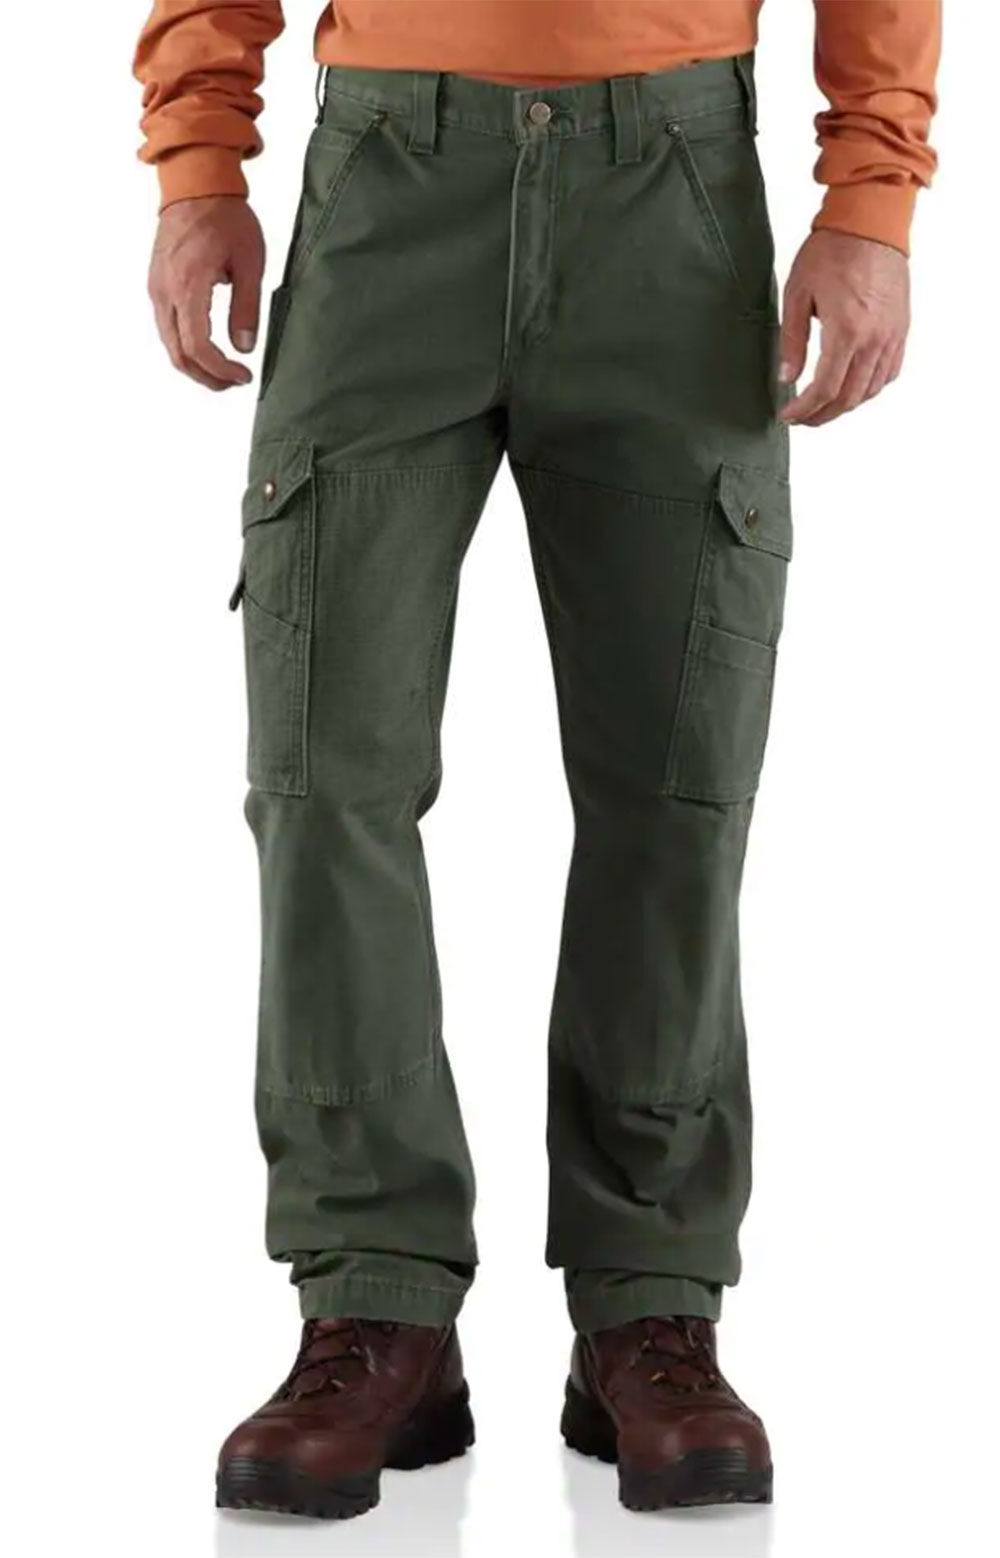 (B342) Cotton Ripstop Relaxed Fit Double Front Cargo Work Pant - Moss